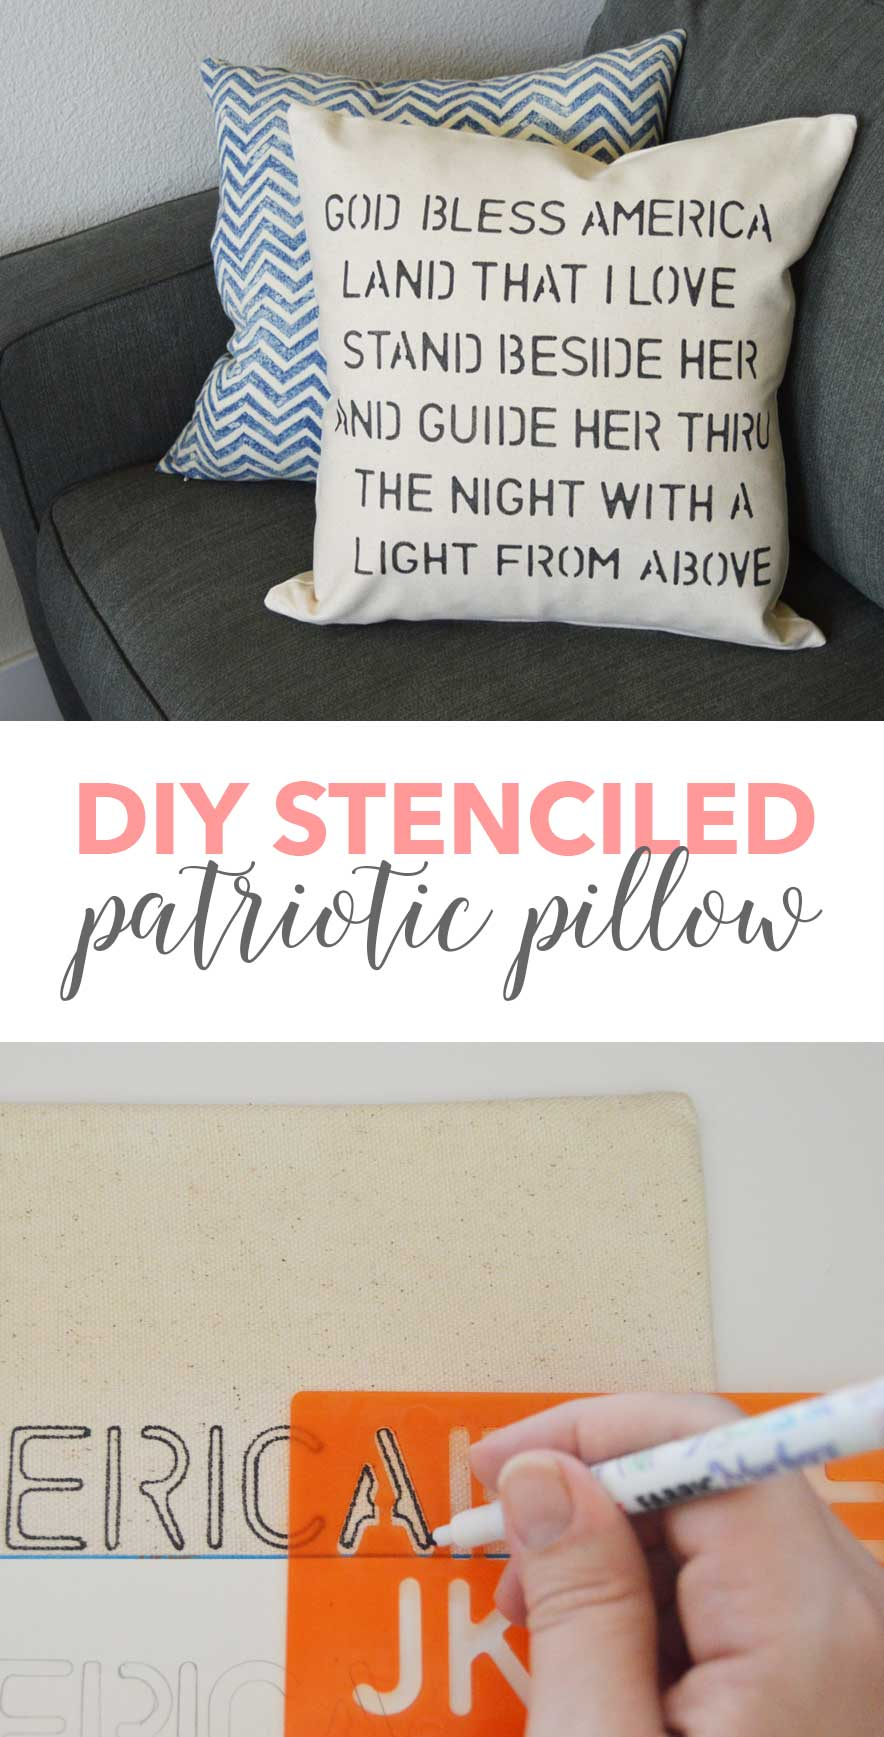 This DIY Stenciled patriotic pillow cover was so easy to make! A great budget-friendly DIY project!